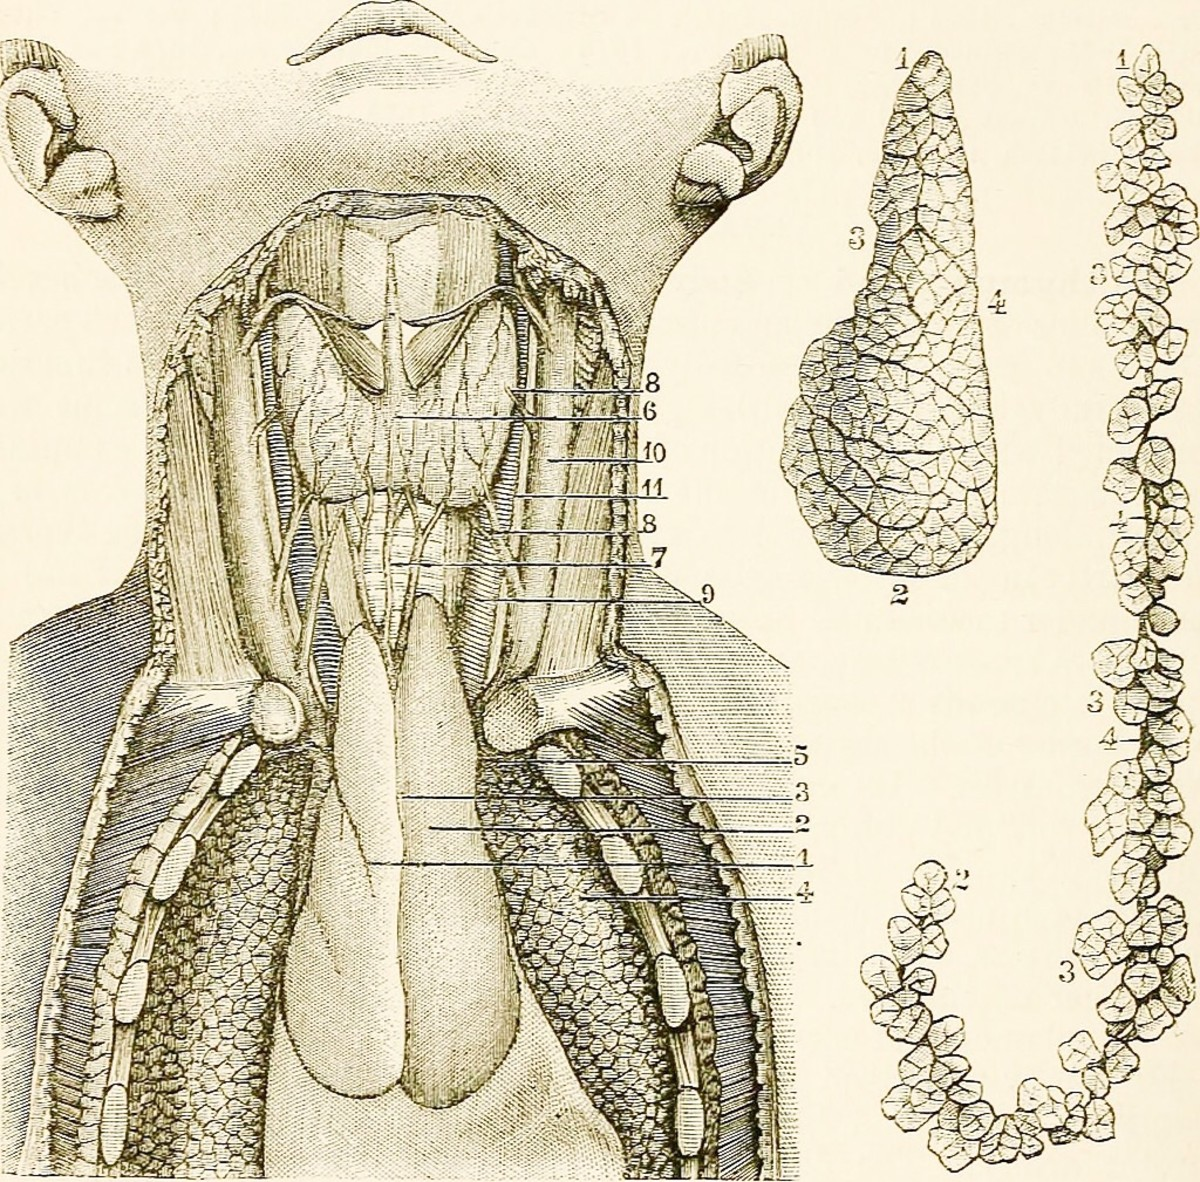 The thyroid gland (6) is located in the front of the neck. The thymus gland (2) is located below the thyroid in the front of the chest and between the lungs (4).